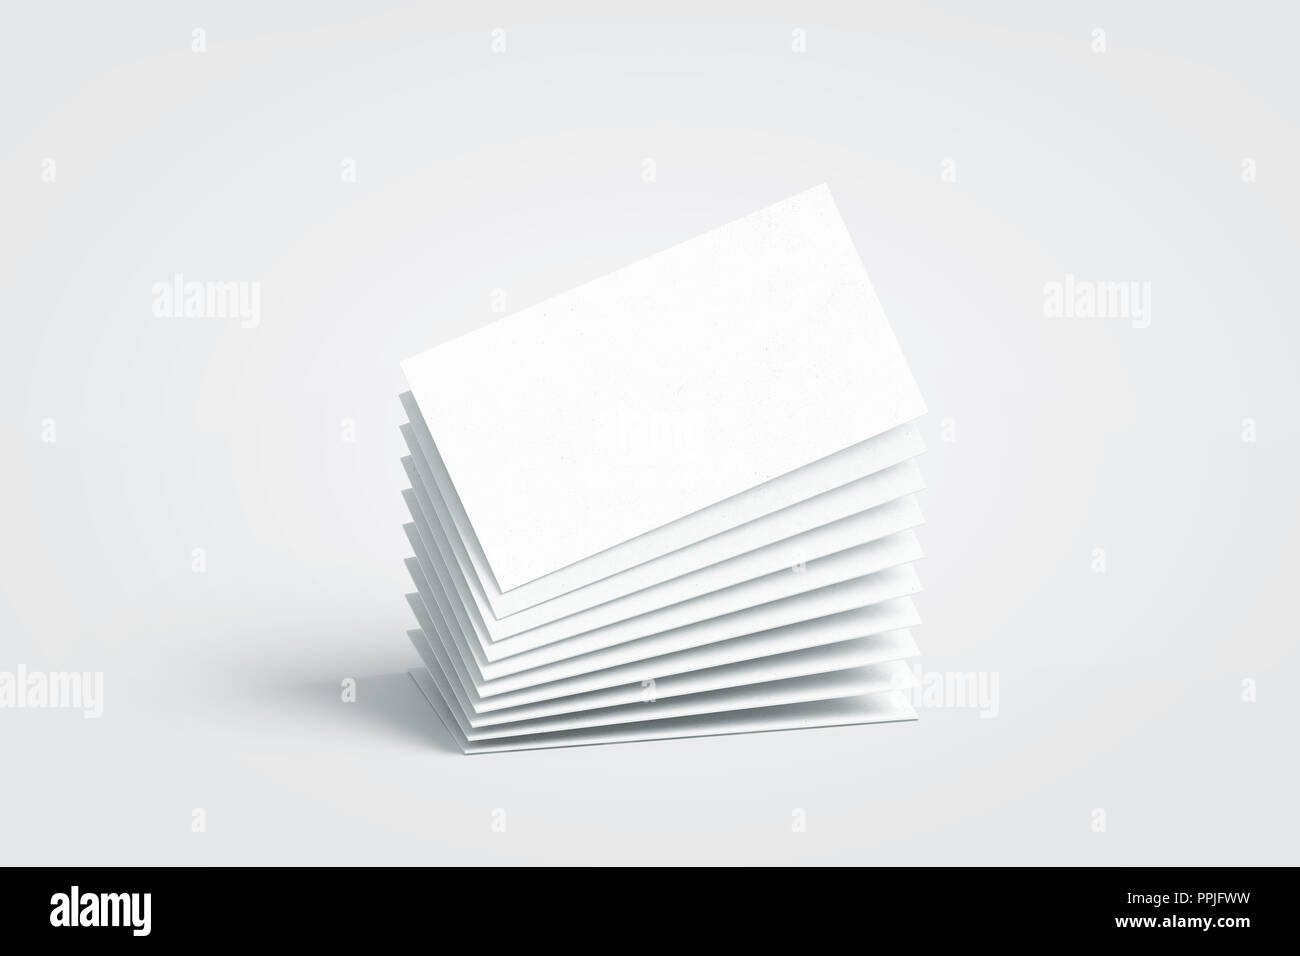 Blank white calling business cards stack mockup, no gravity, 3d rendering. Empty bussiness papers mock up. Clear namecard pile template. Visiting papersheet for for company name, phone number, email address. - Stock Image